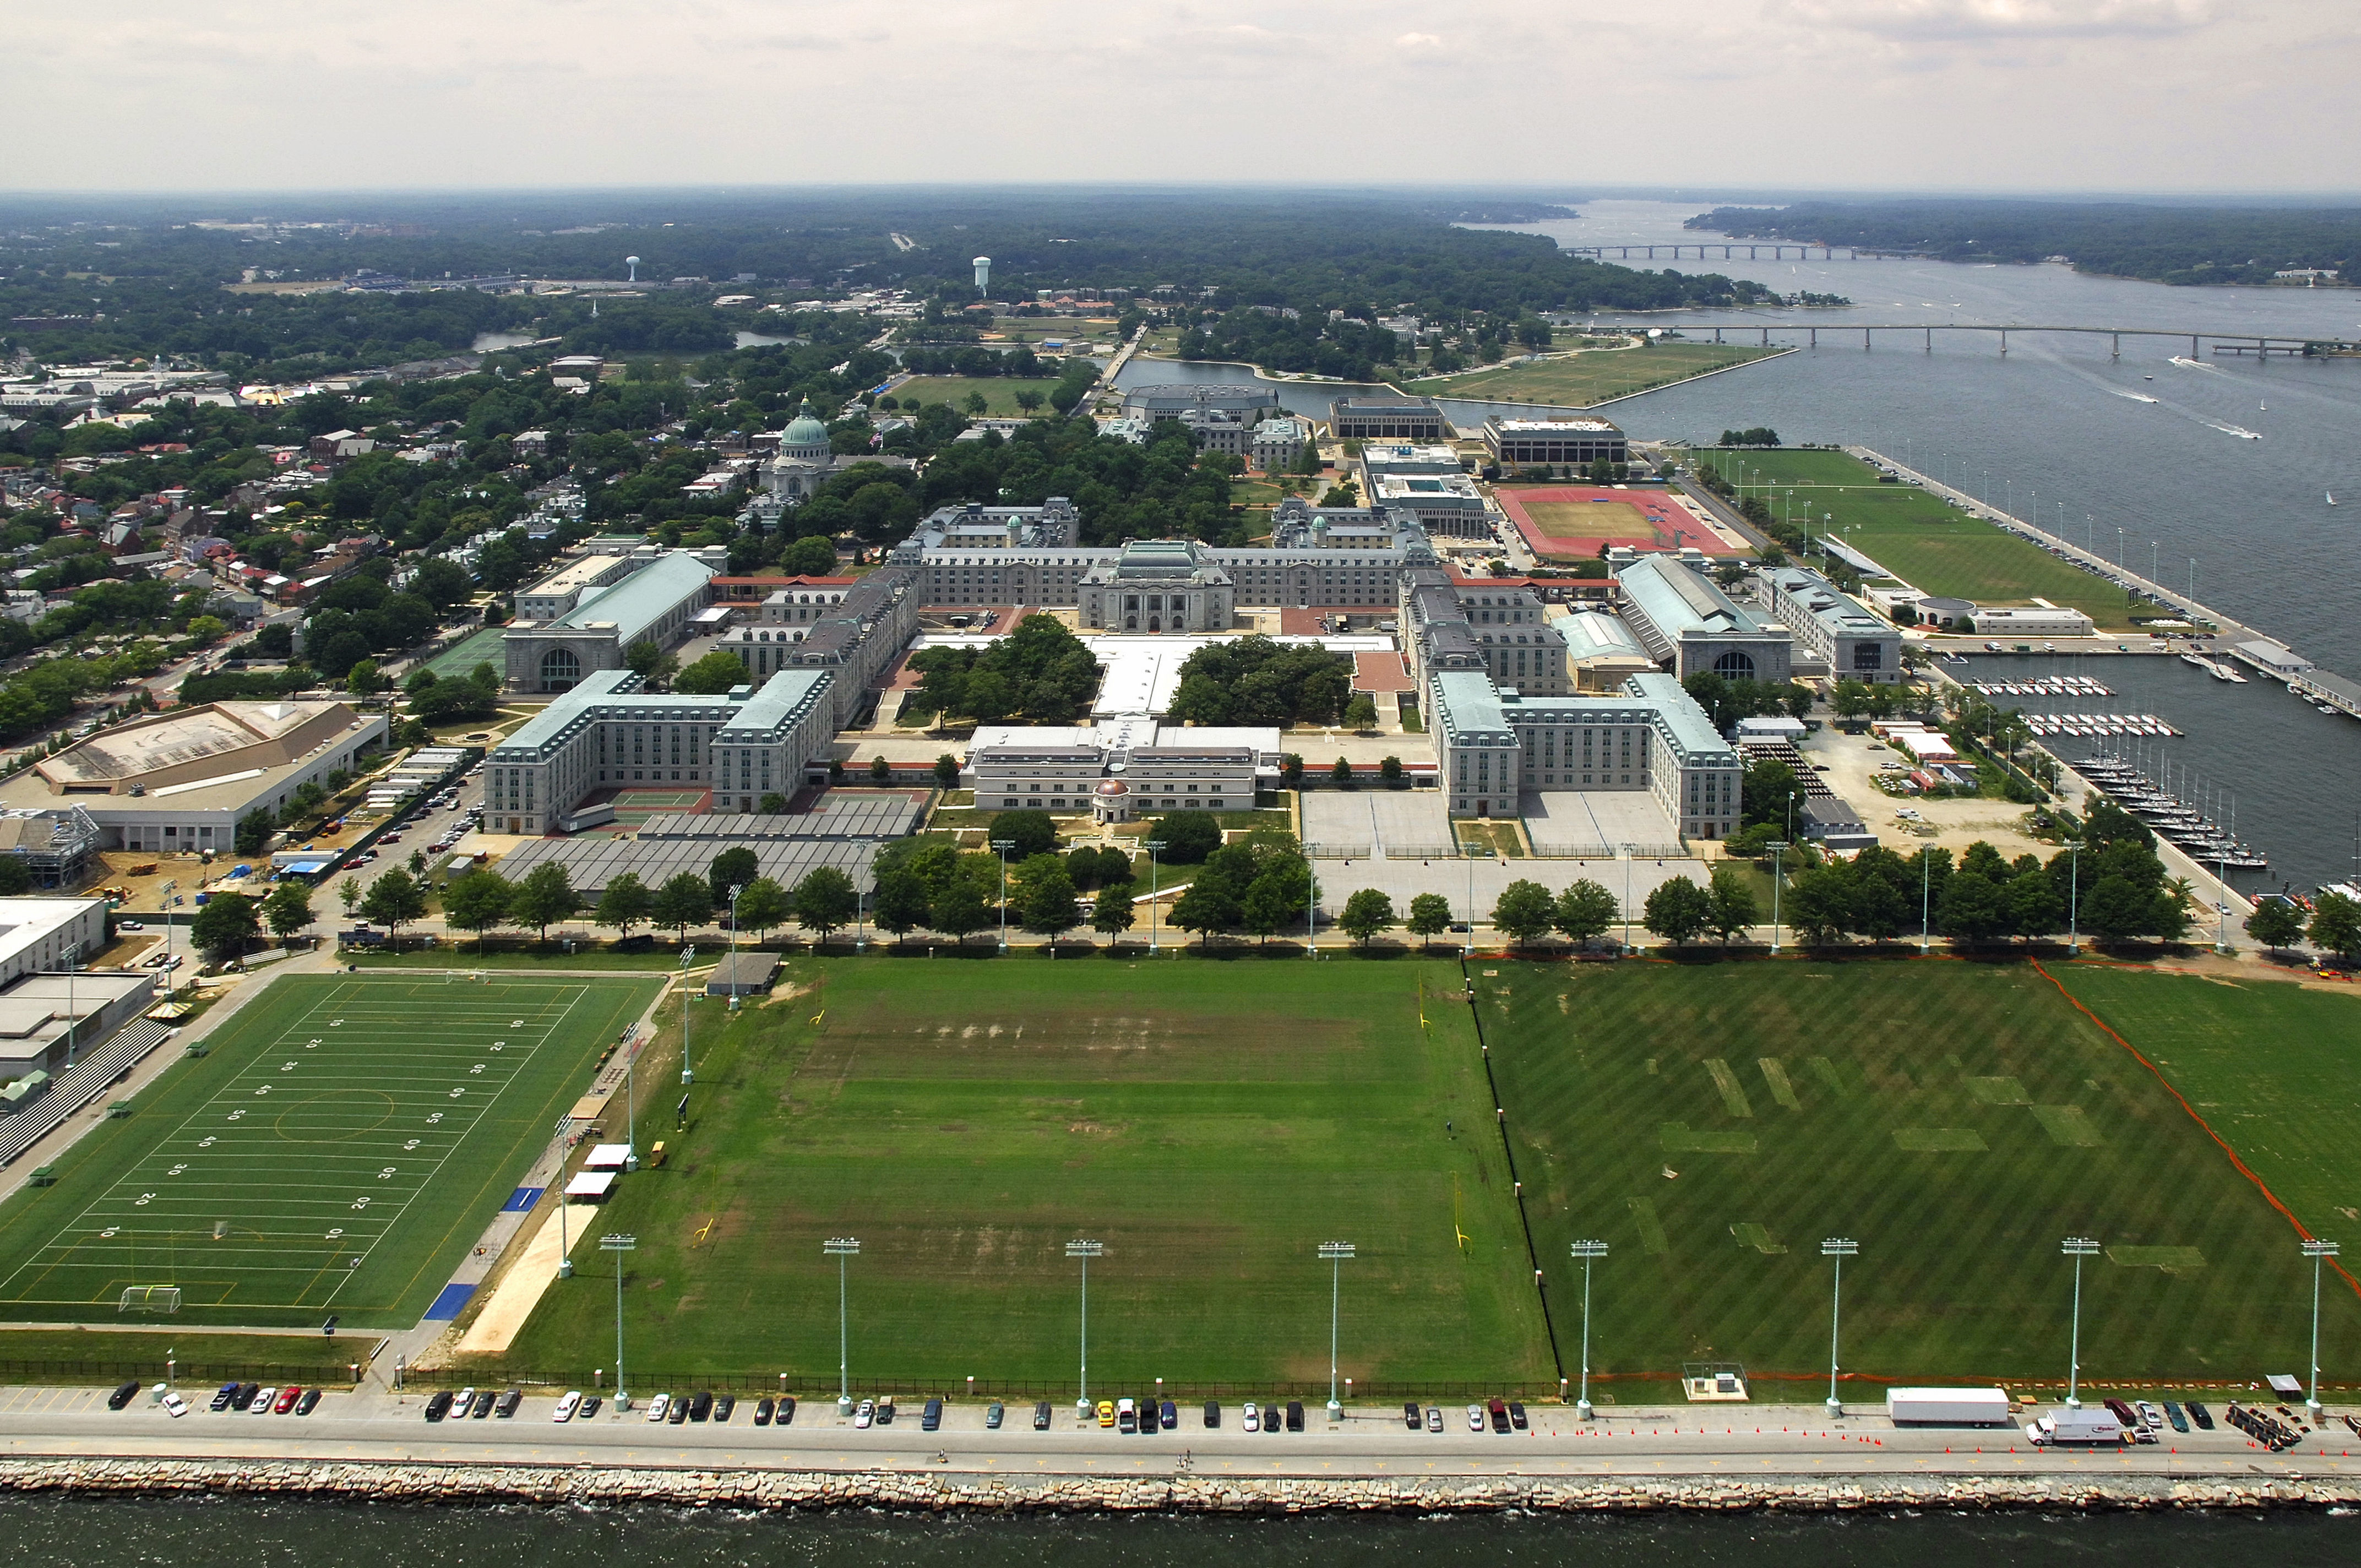 US Naval Academy Harbor In Annapolis MD United States